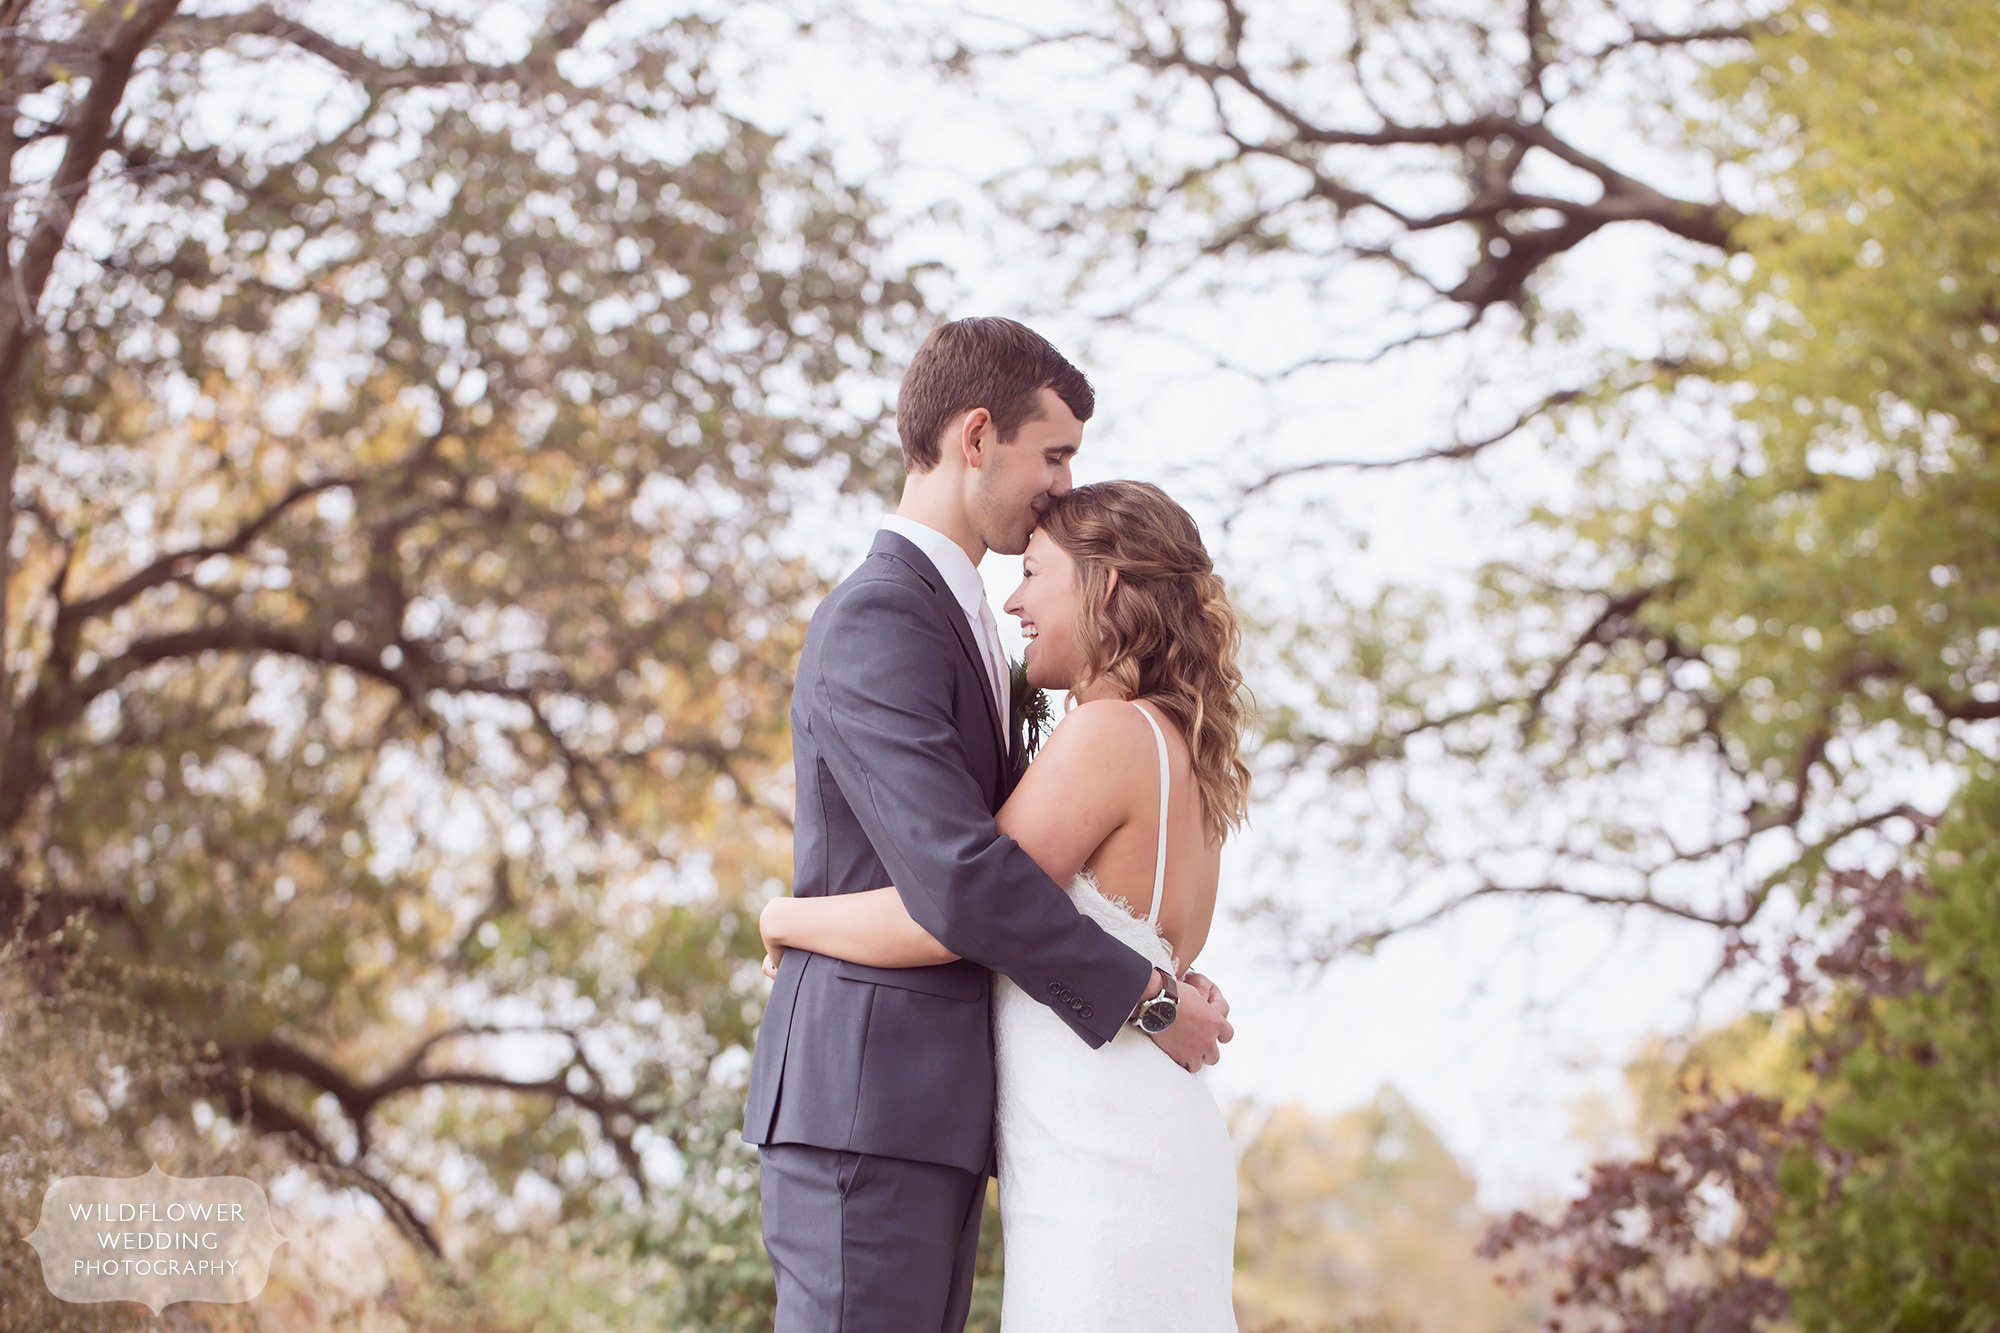 Unique wedding photography with artistic composition of bride and groom under trees at the Blue Bell Farm.